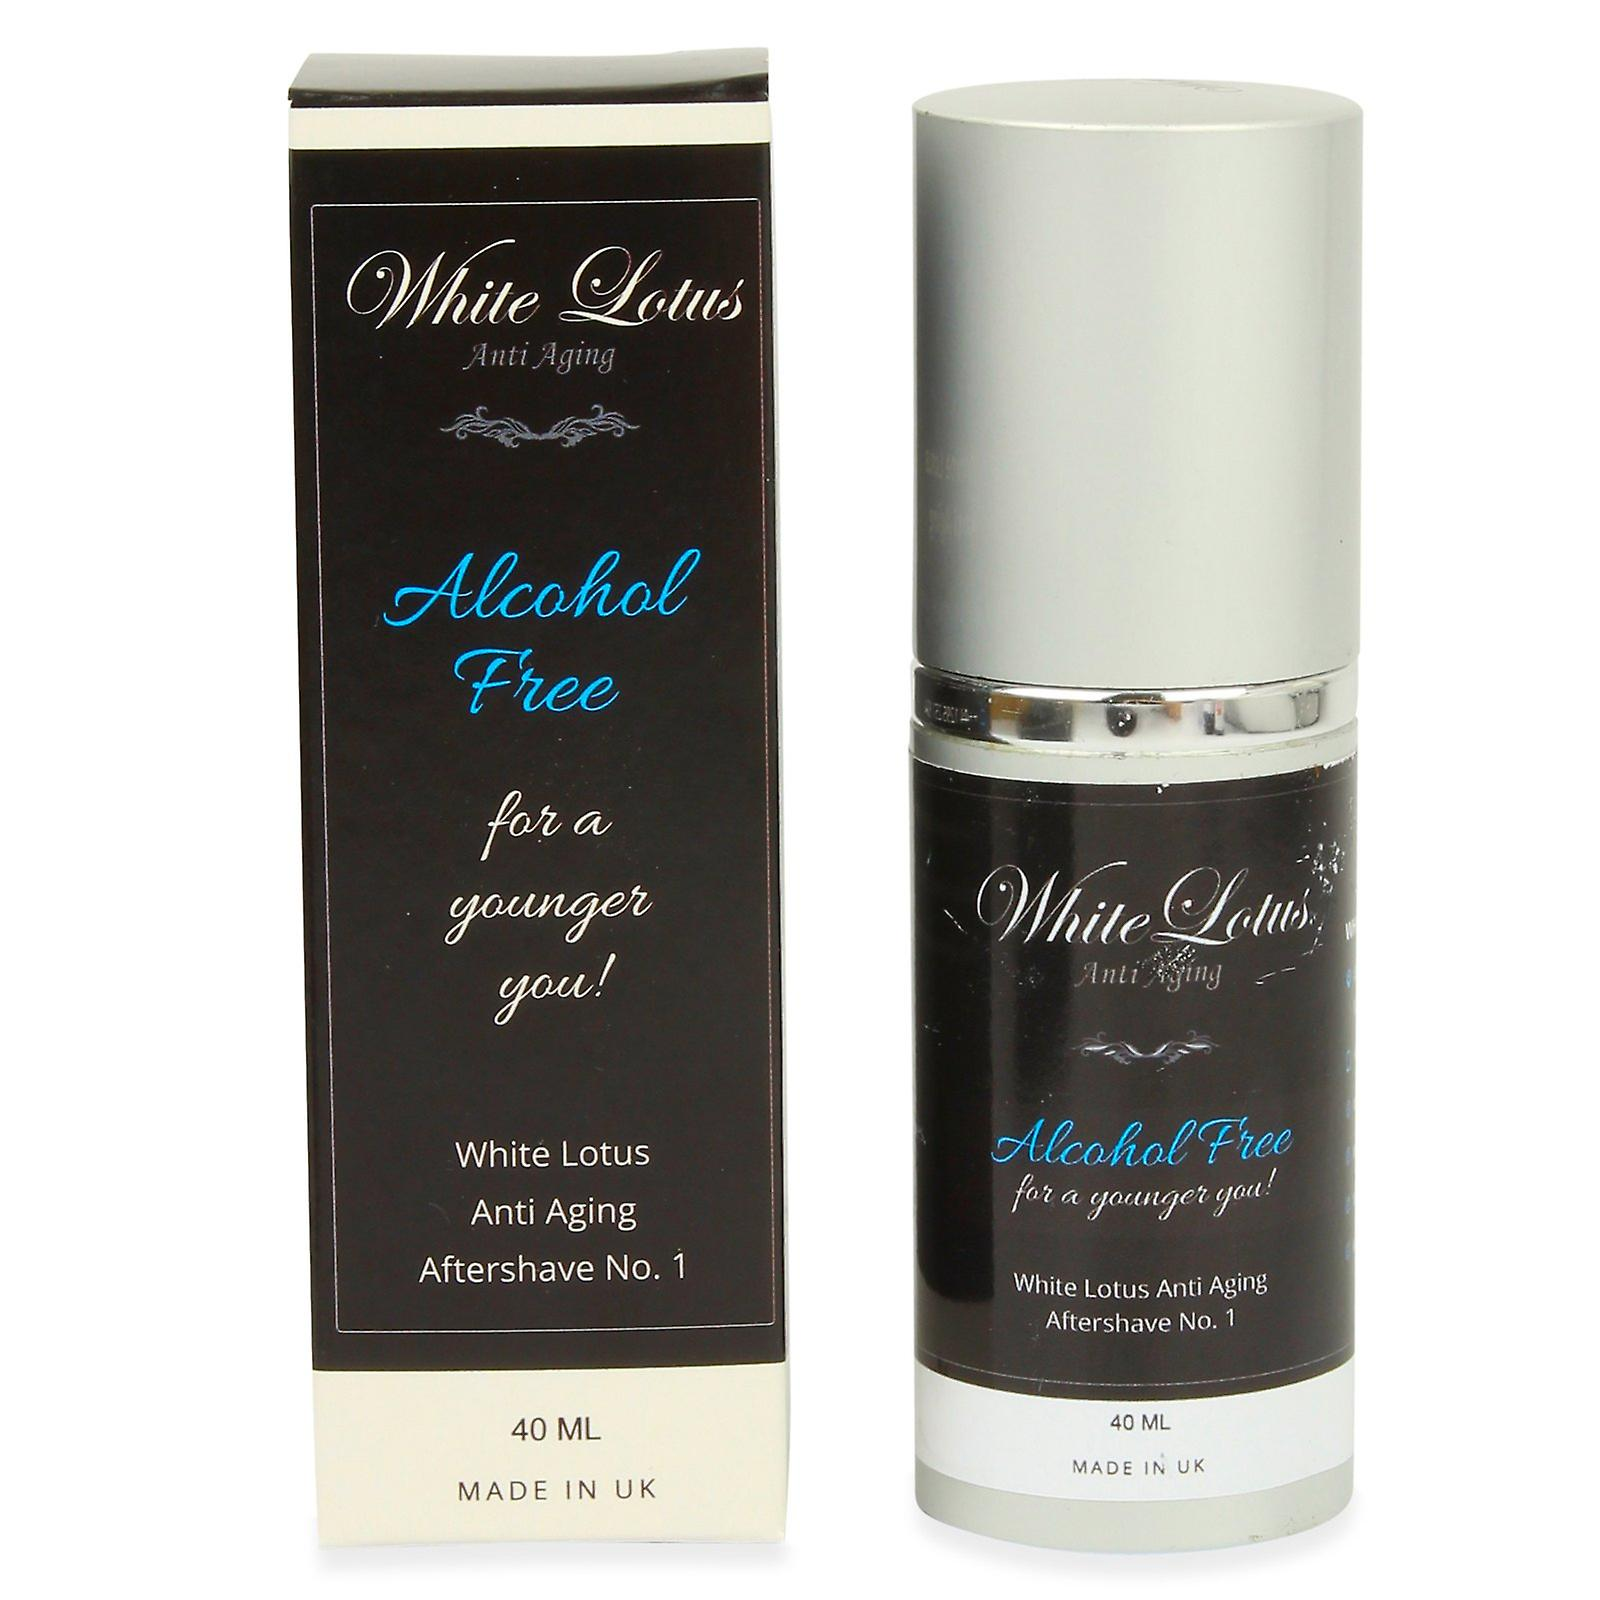 Hypoallergenic alcohol free aftershave - no.1